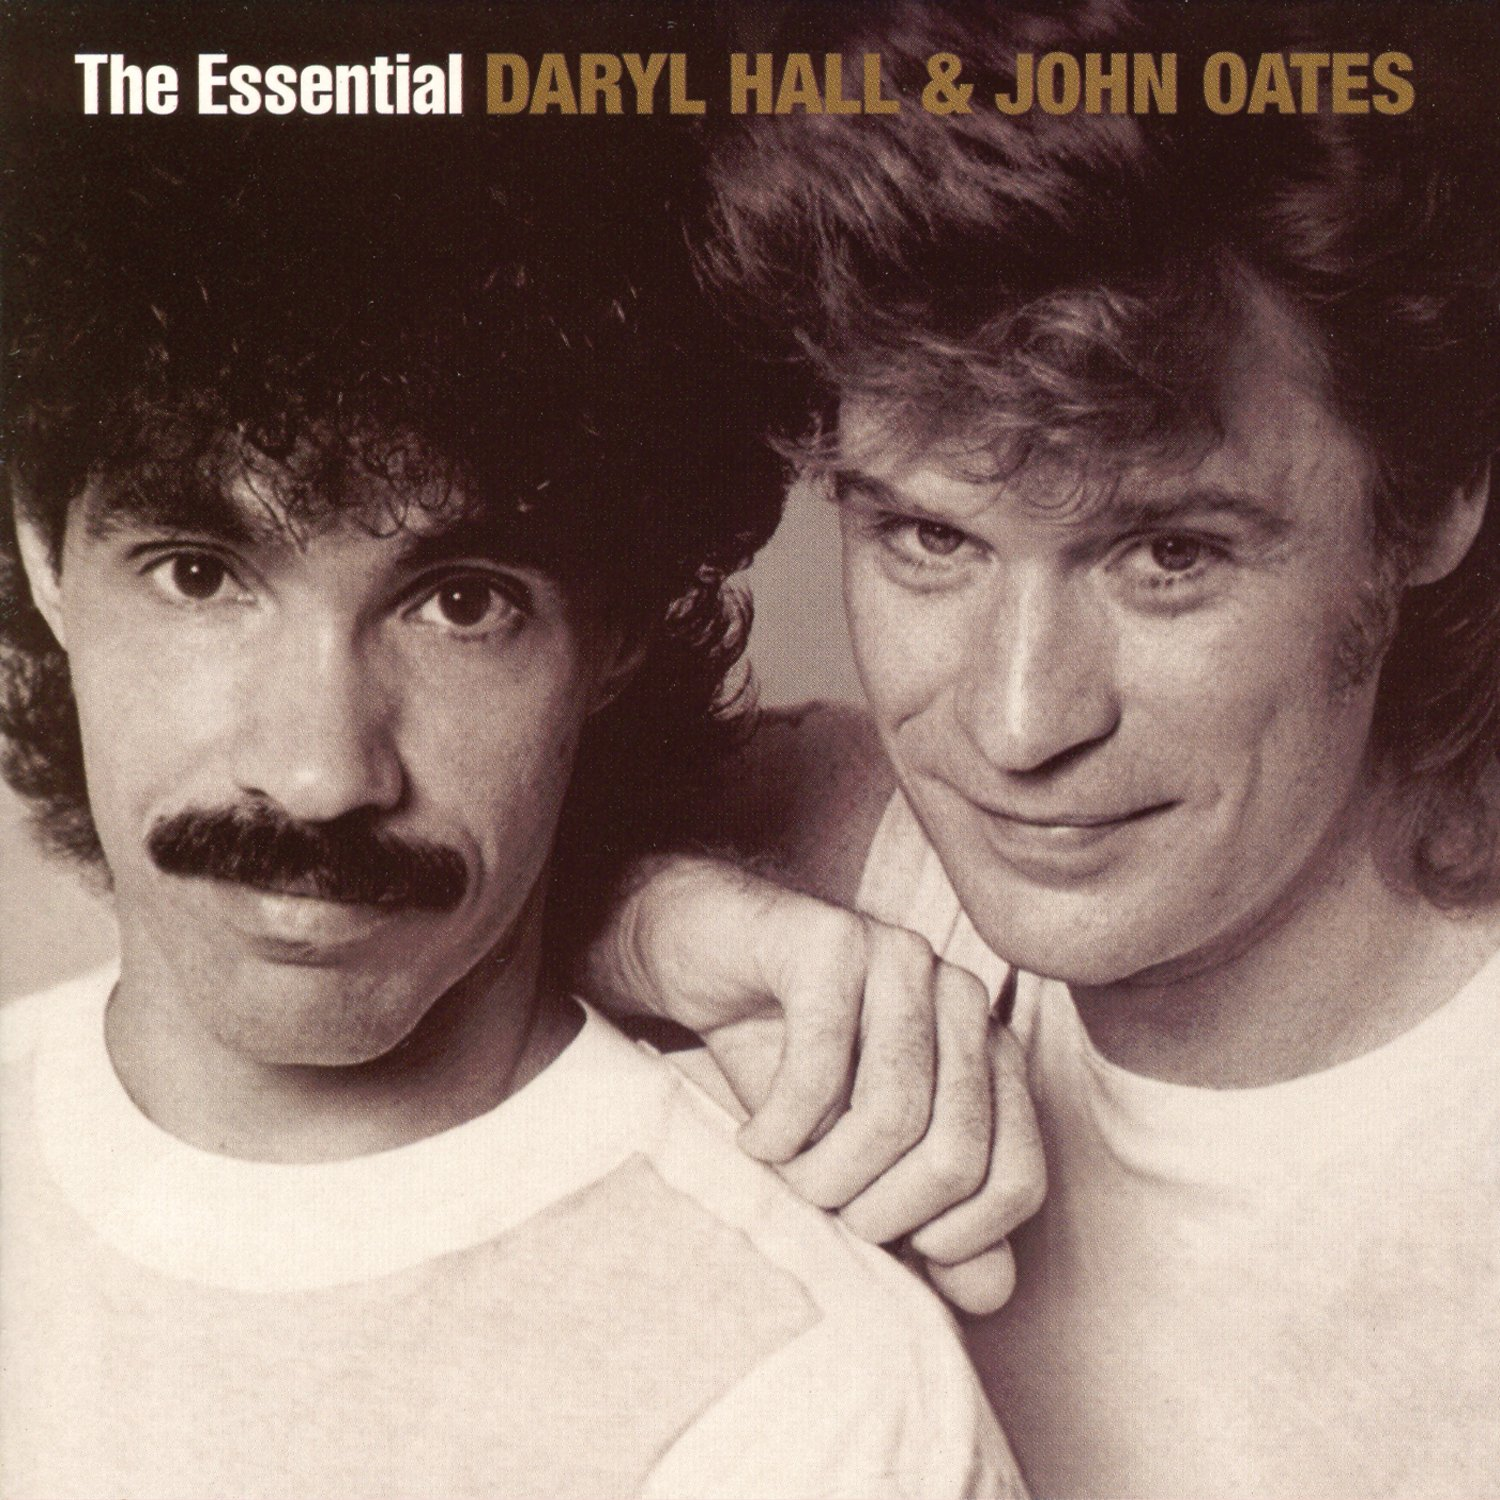 The Essential Daryl Hall & John Oates by Legacy